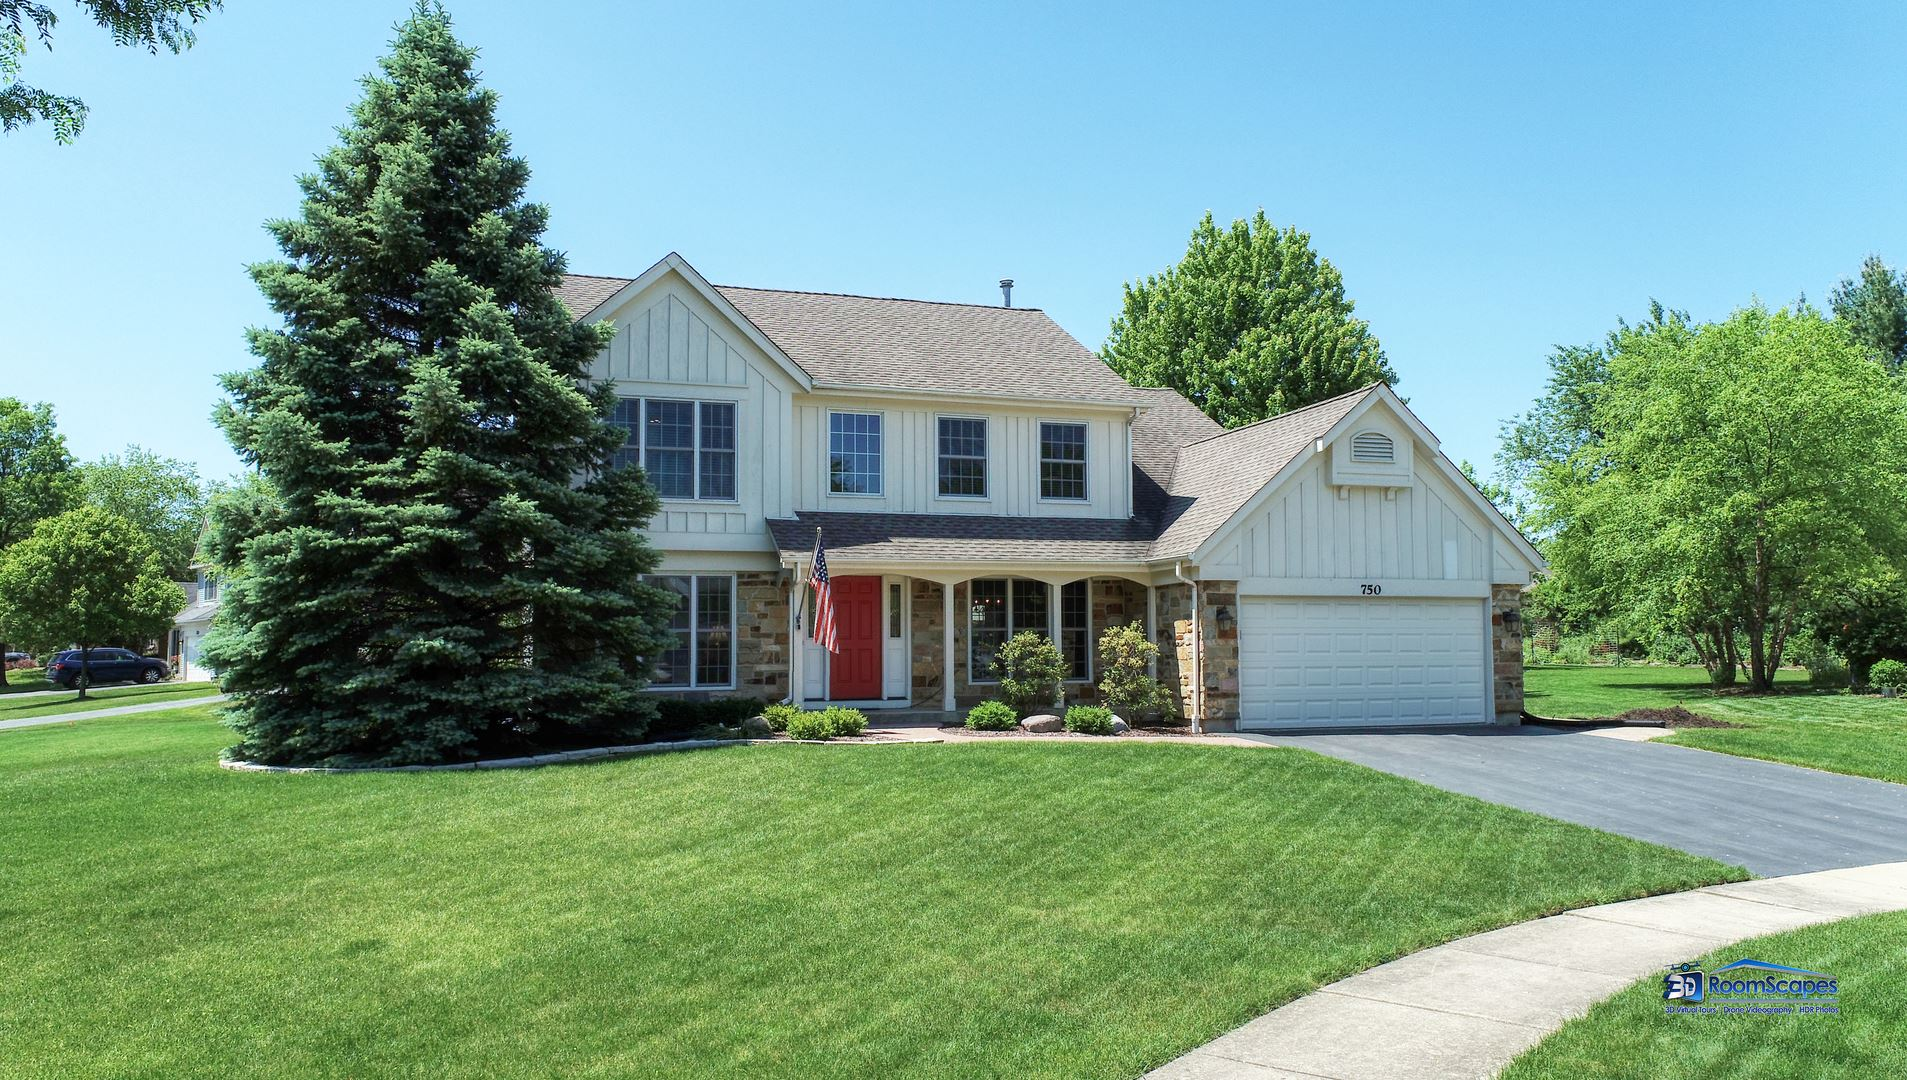 750 Warwick Court, Lake Zurich, IL 60047 - #: 10673488